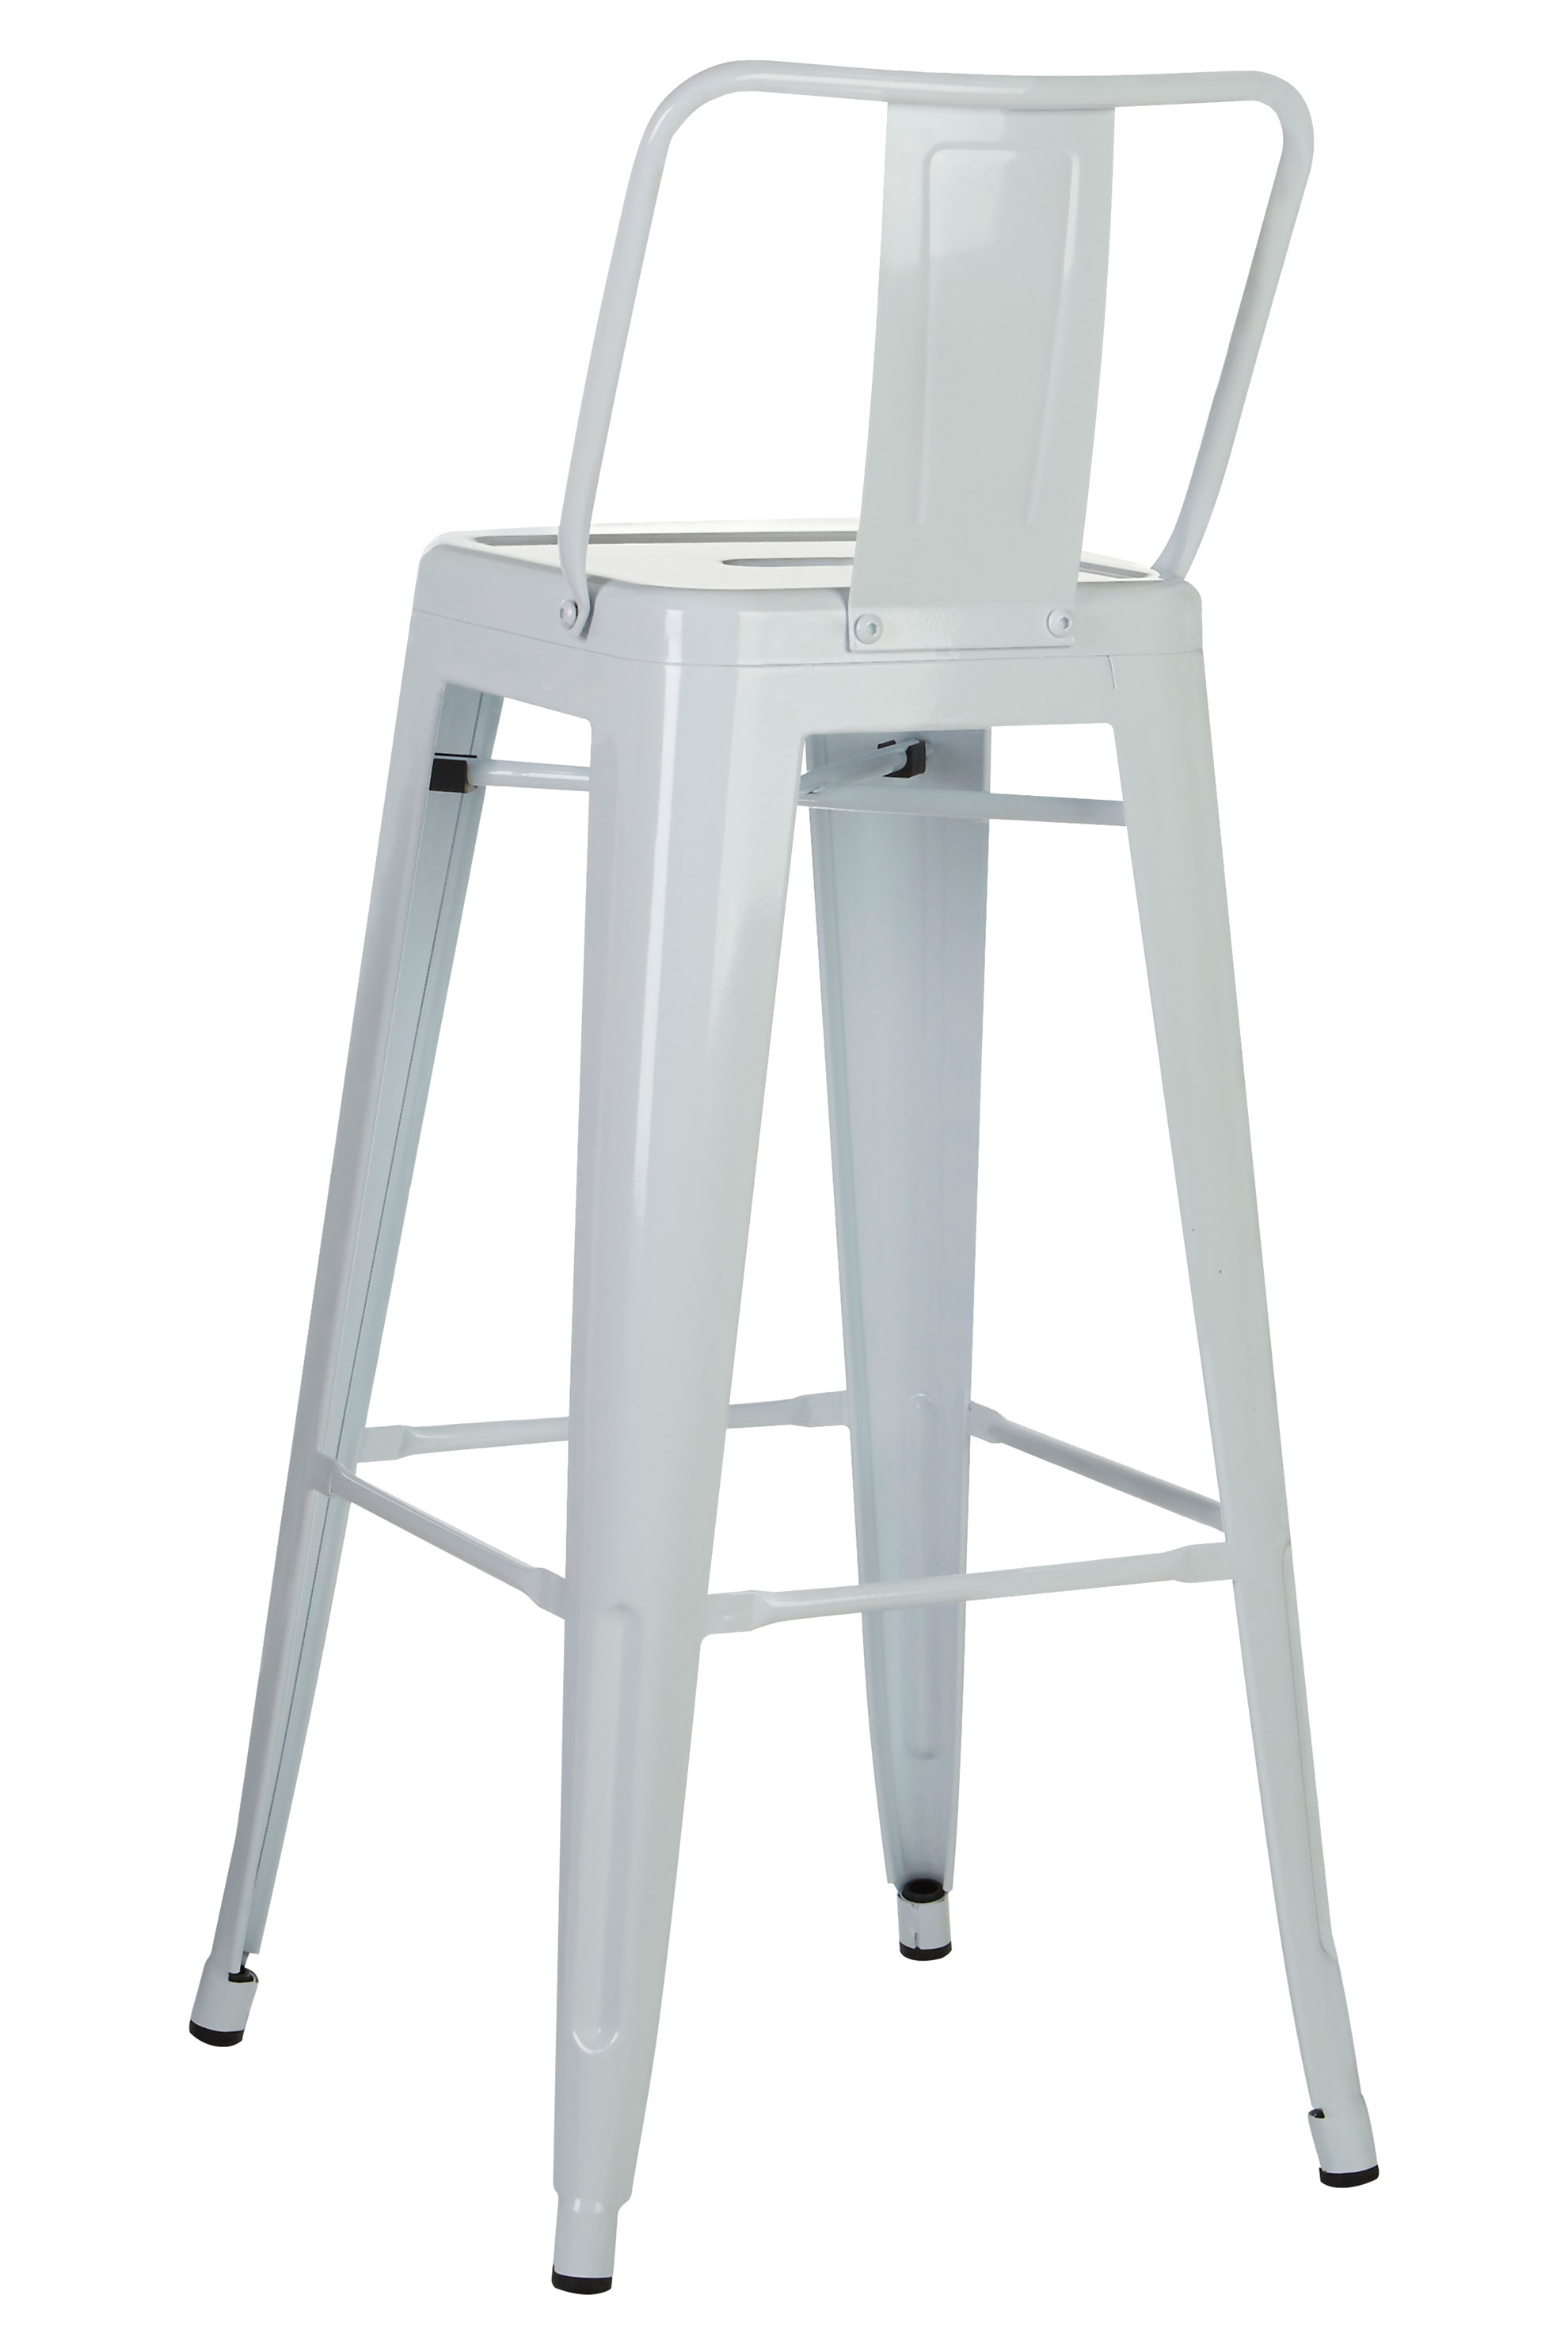 stylish high chair childrens table and chairs toys r us uk metal industrial bar stool backed white